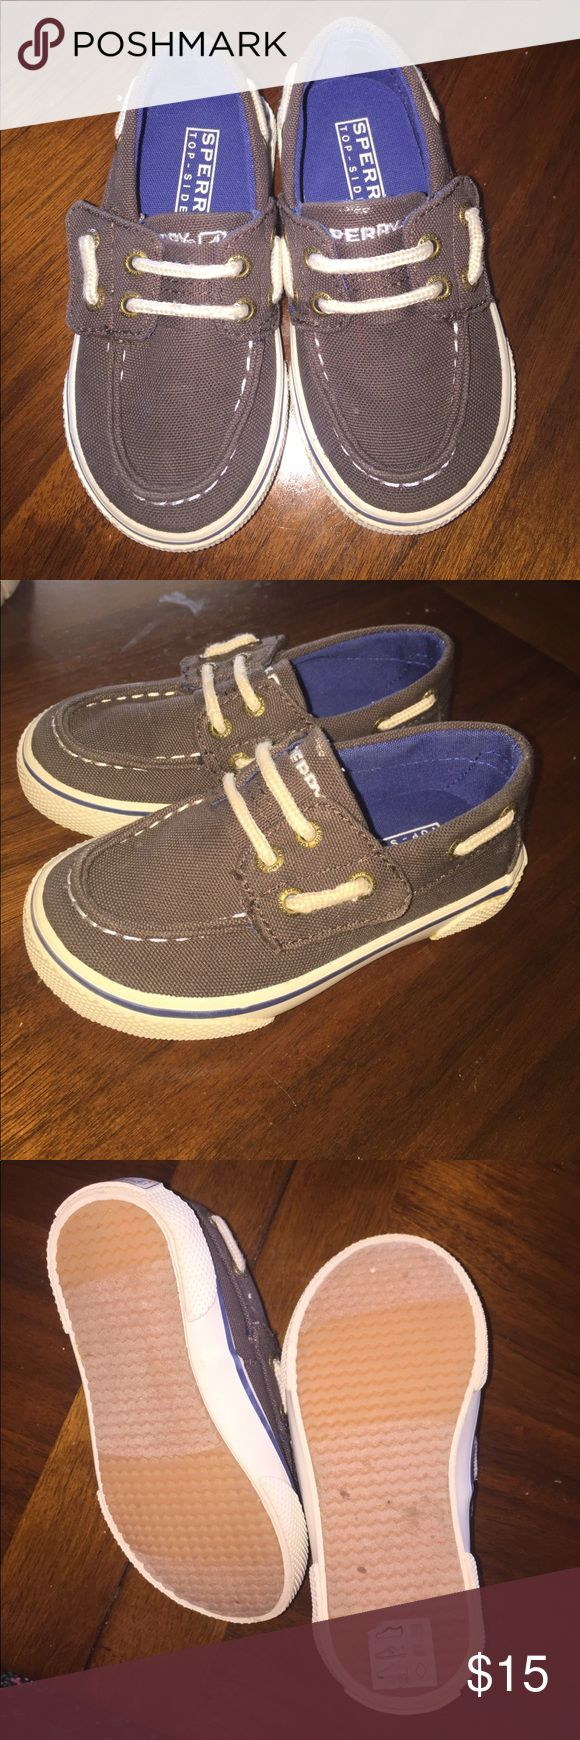 Toddler boys sperrys size 6.5 Brown cloth toddler boys sperrys size 6.5 Barely worn like new Sperry Top-Sider Shoes Dress Shoes